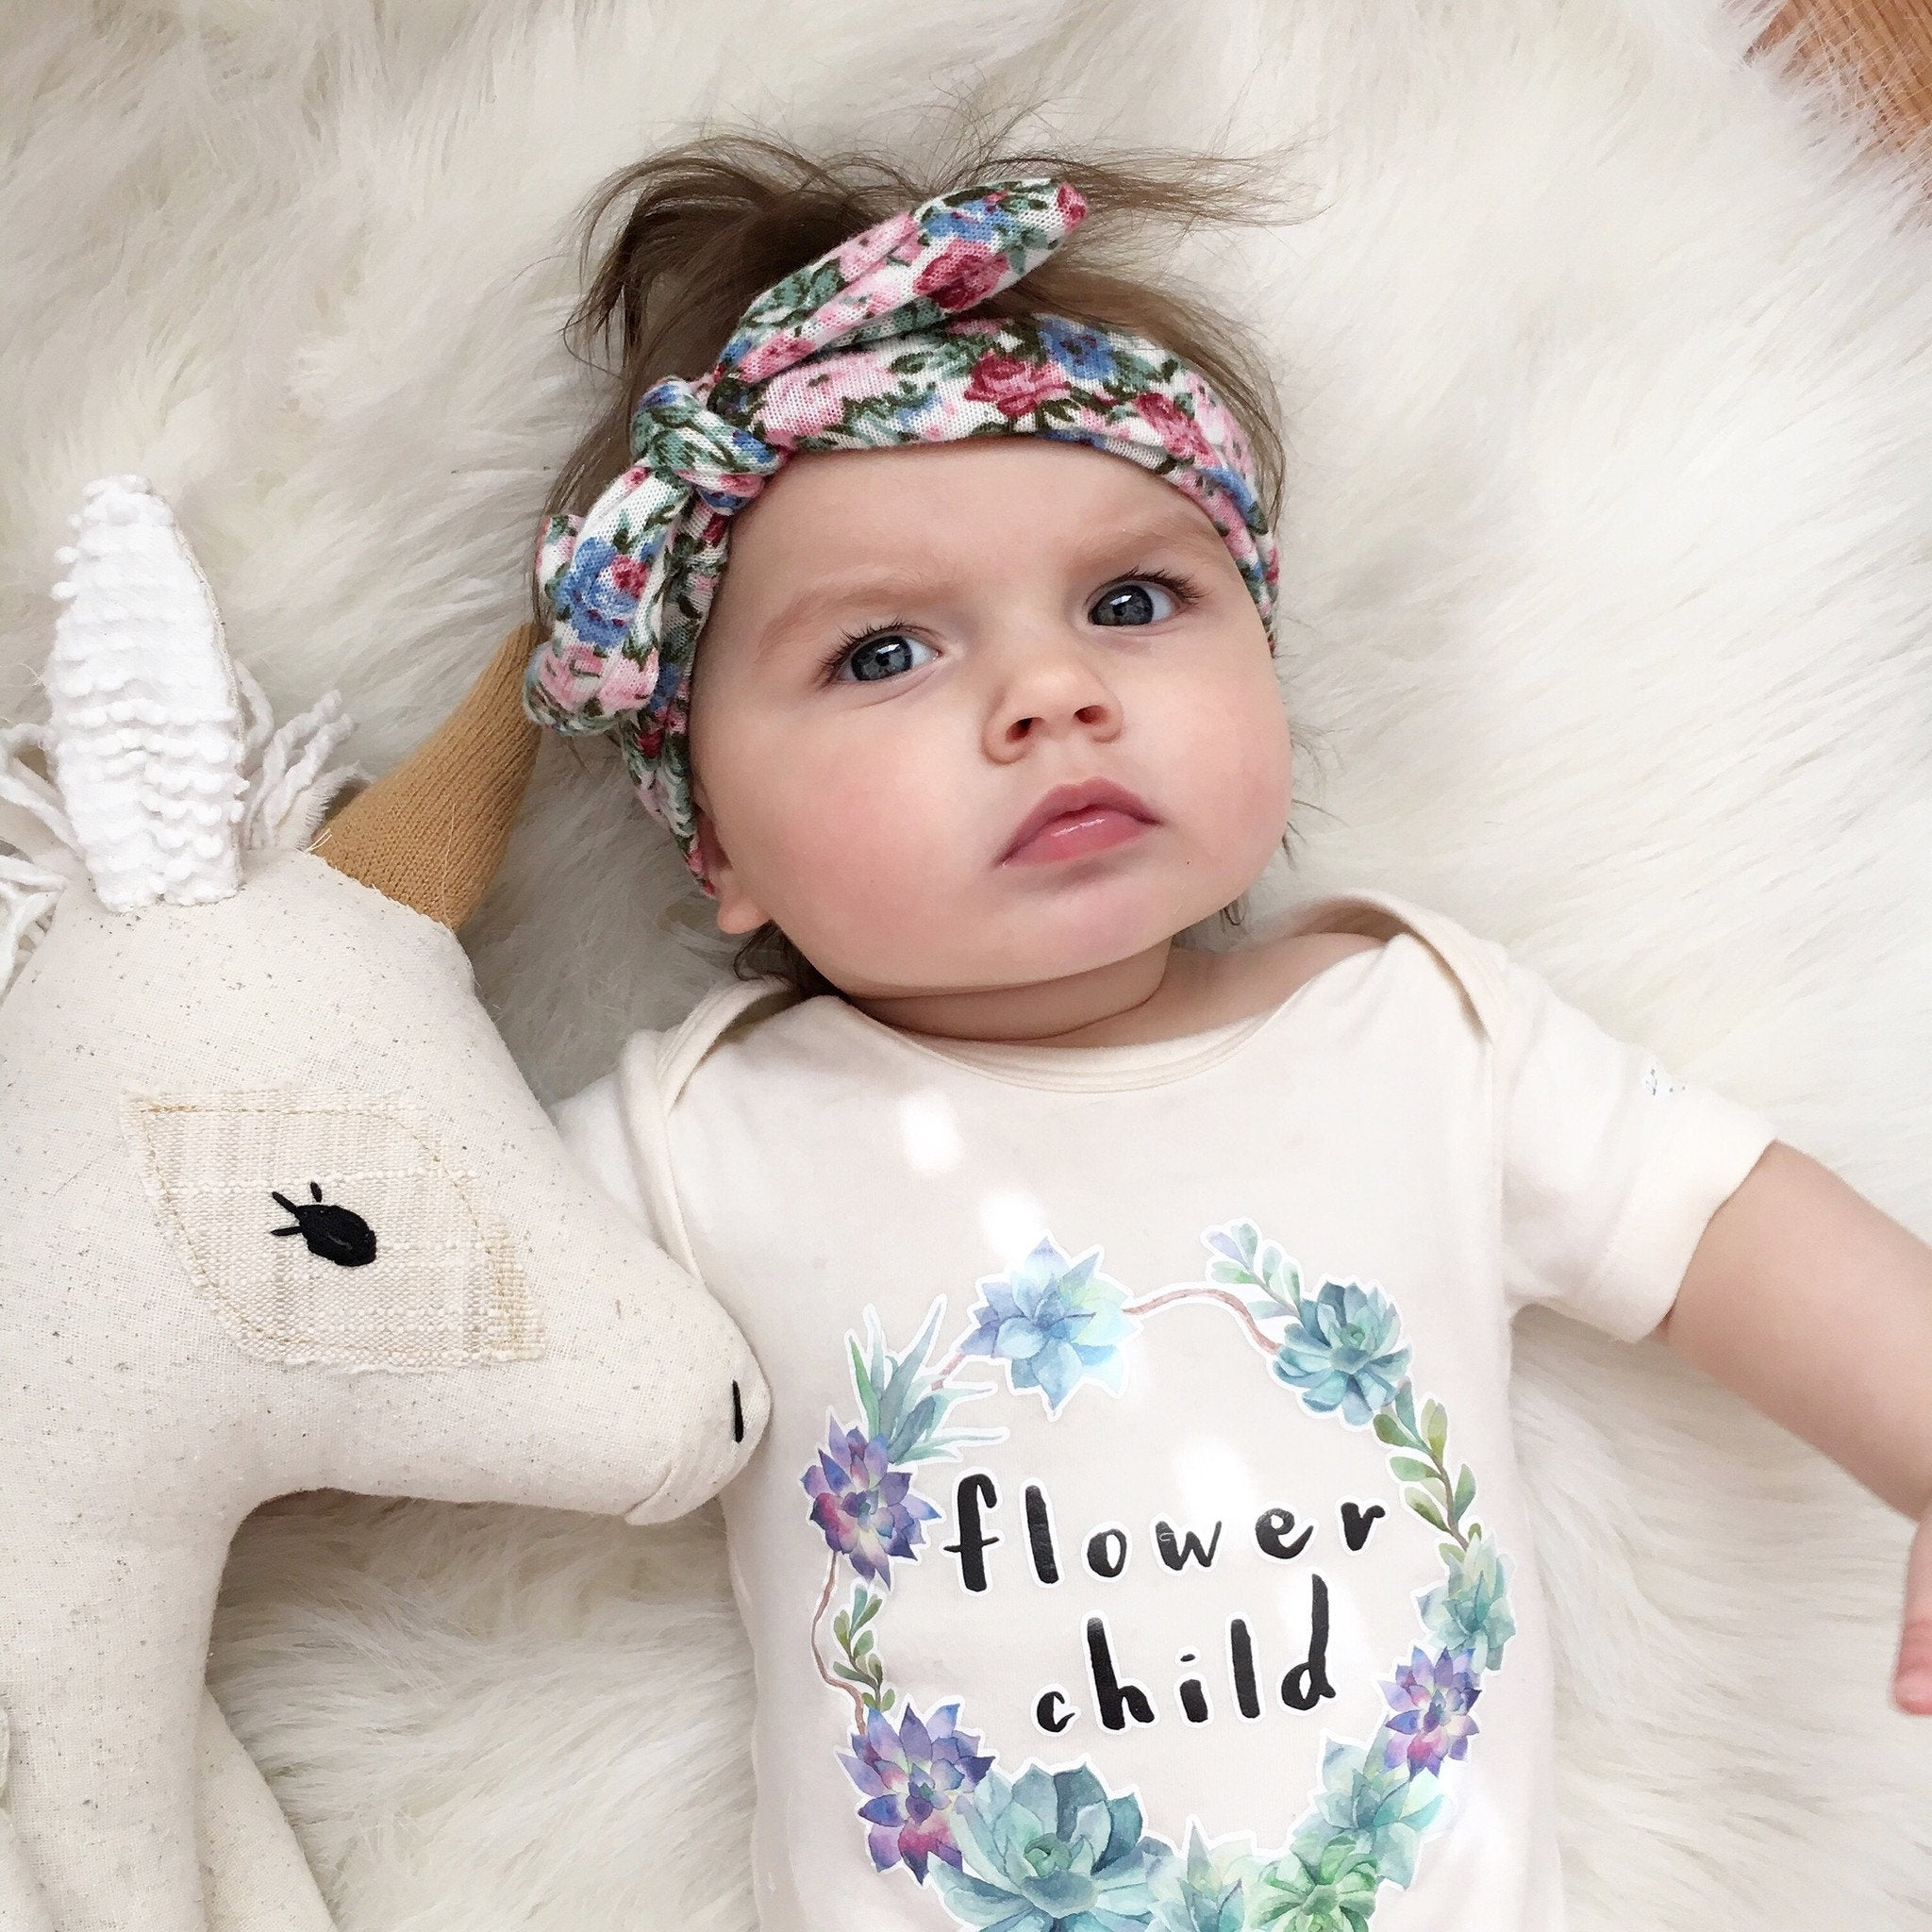 Free shipping on baby girl clothes at whomeverf.cf Shop dresses, bodysuits, footies, coats & more clothing for baby girls. Free shipping & returns. Skip navigation. Give a little wow. The best gifts are here, every day of the year. Preemie Newborn M M M M M M.